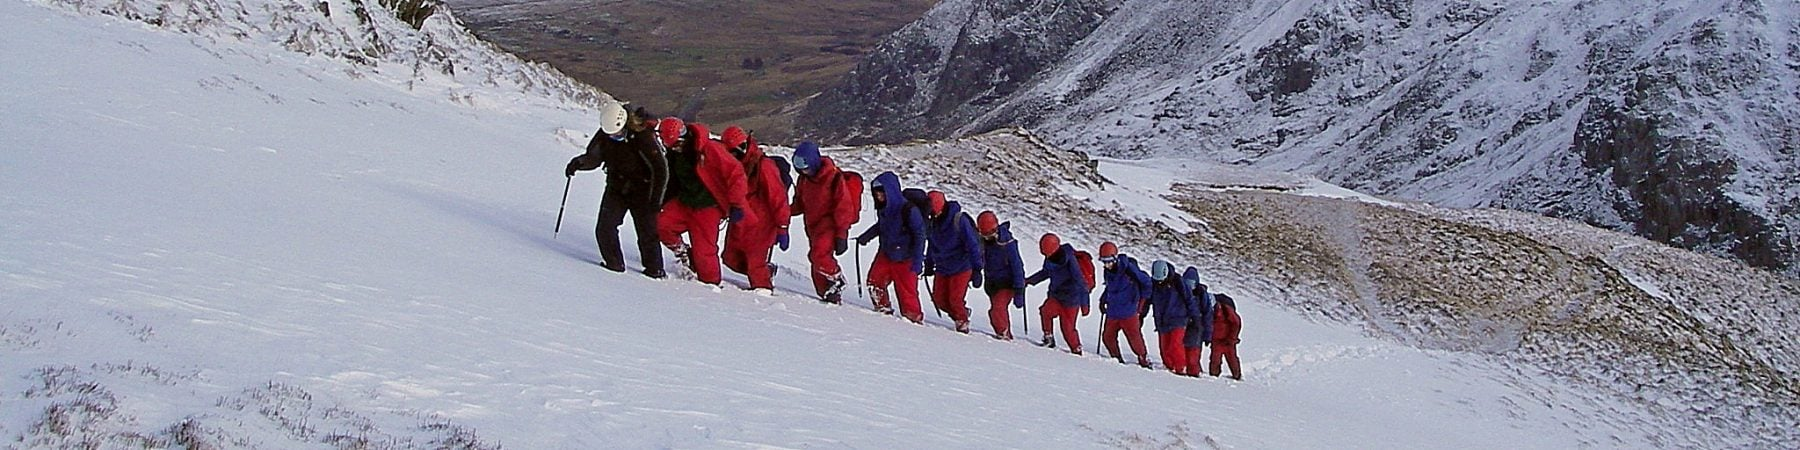 A group walking one behind another up a snowy mountain in red and blue waterproofs